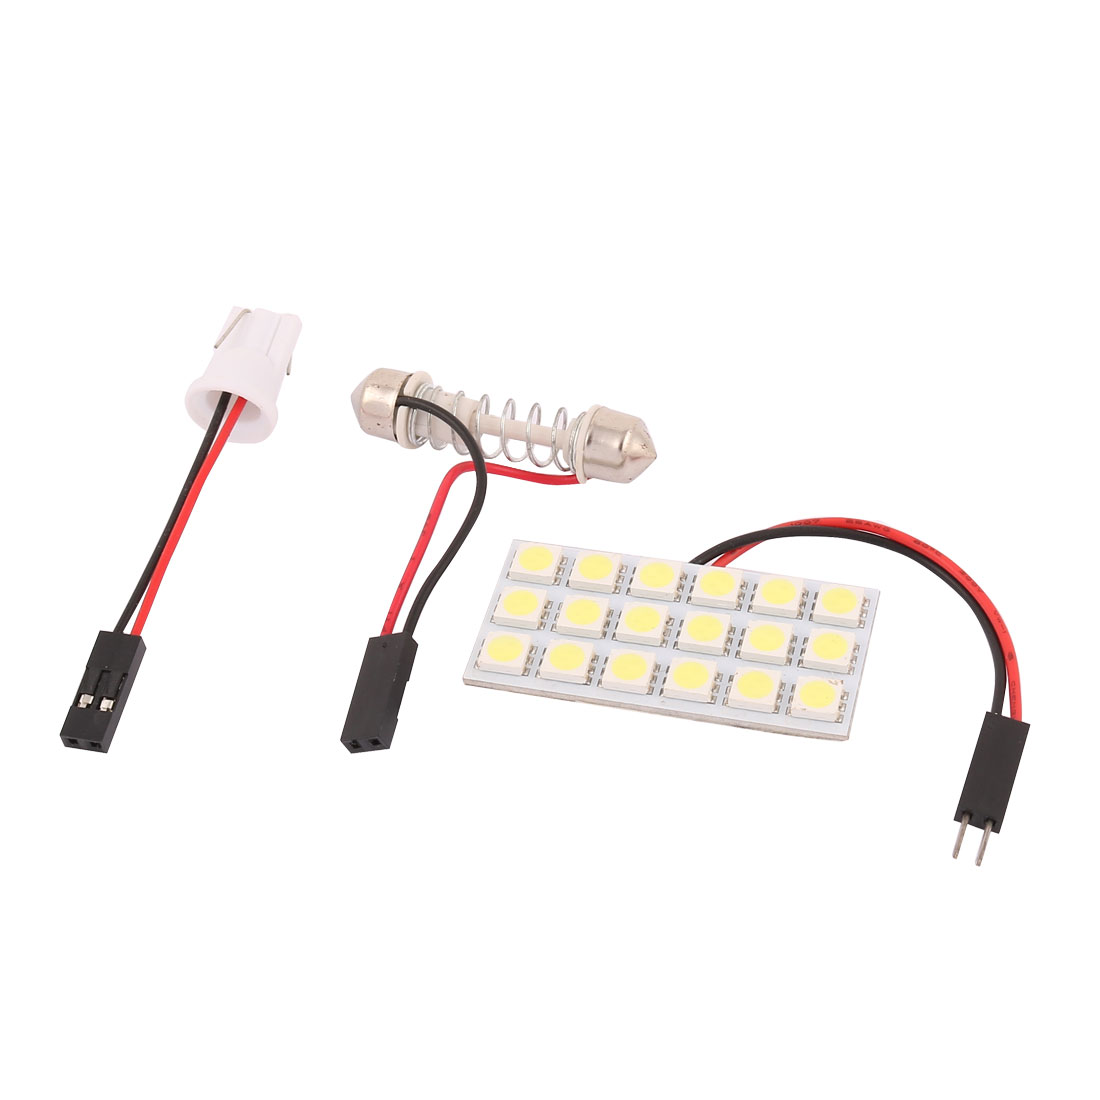 White 18 LED Panel 5050 SMD Dome Bulb Light Lamp + T10 Festoon Adapter